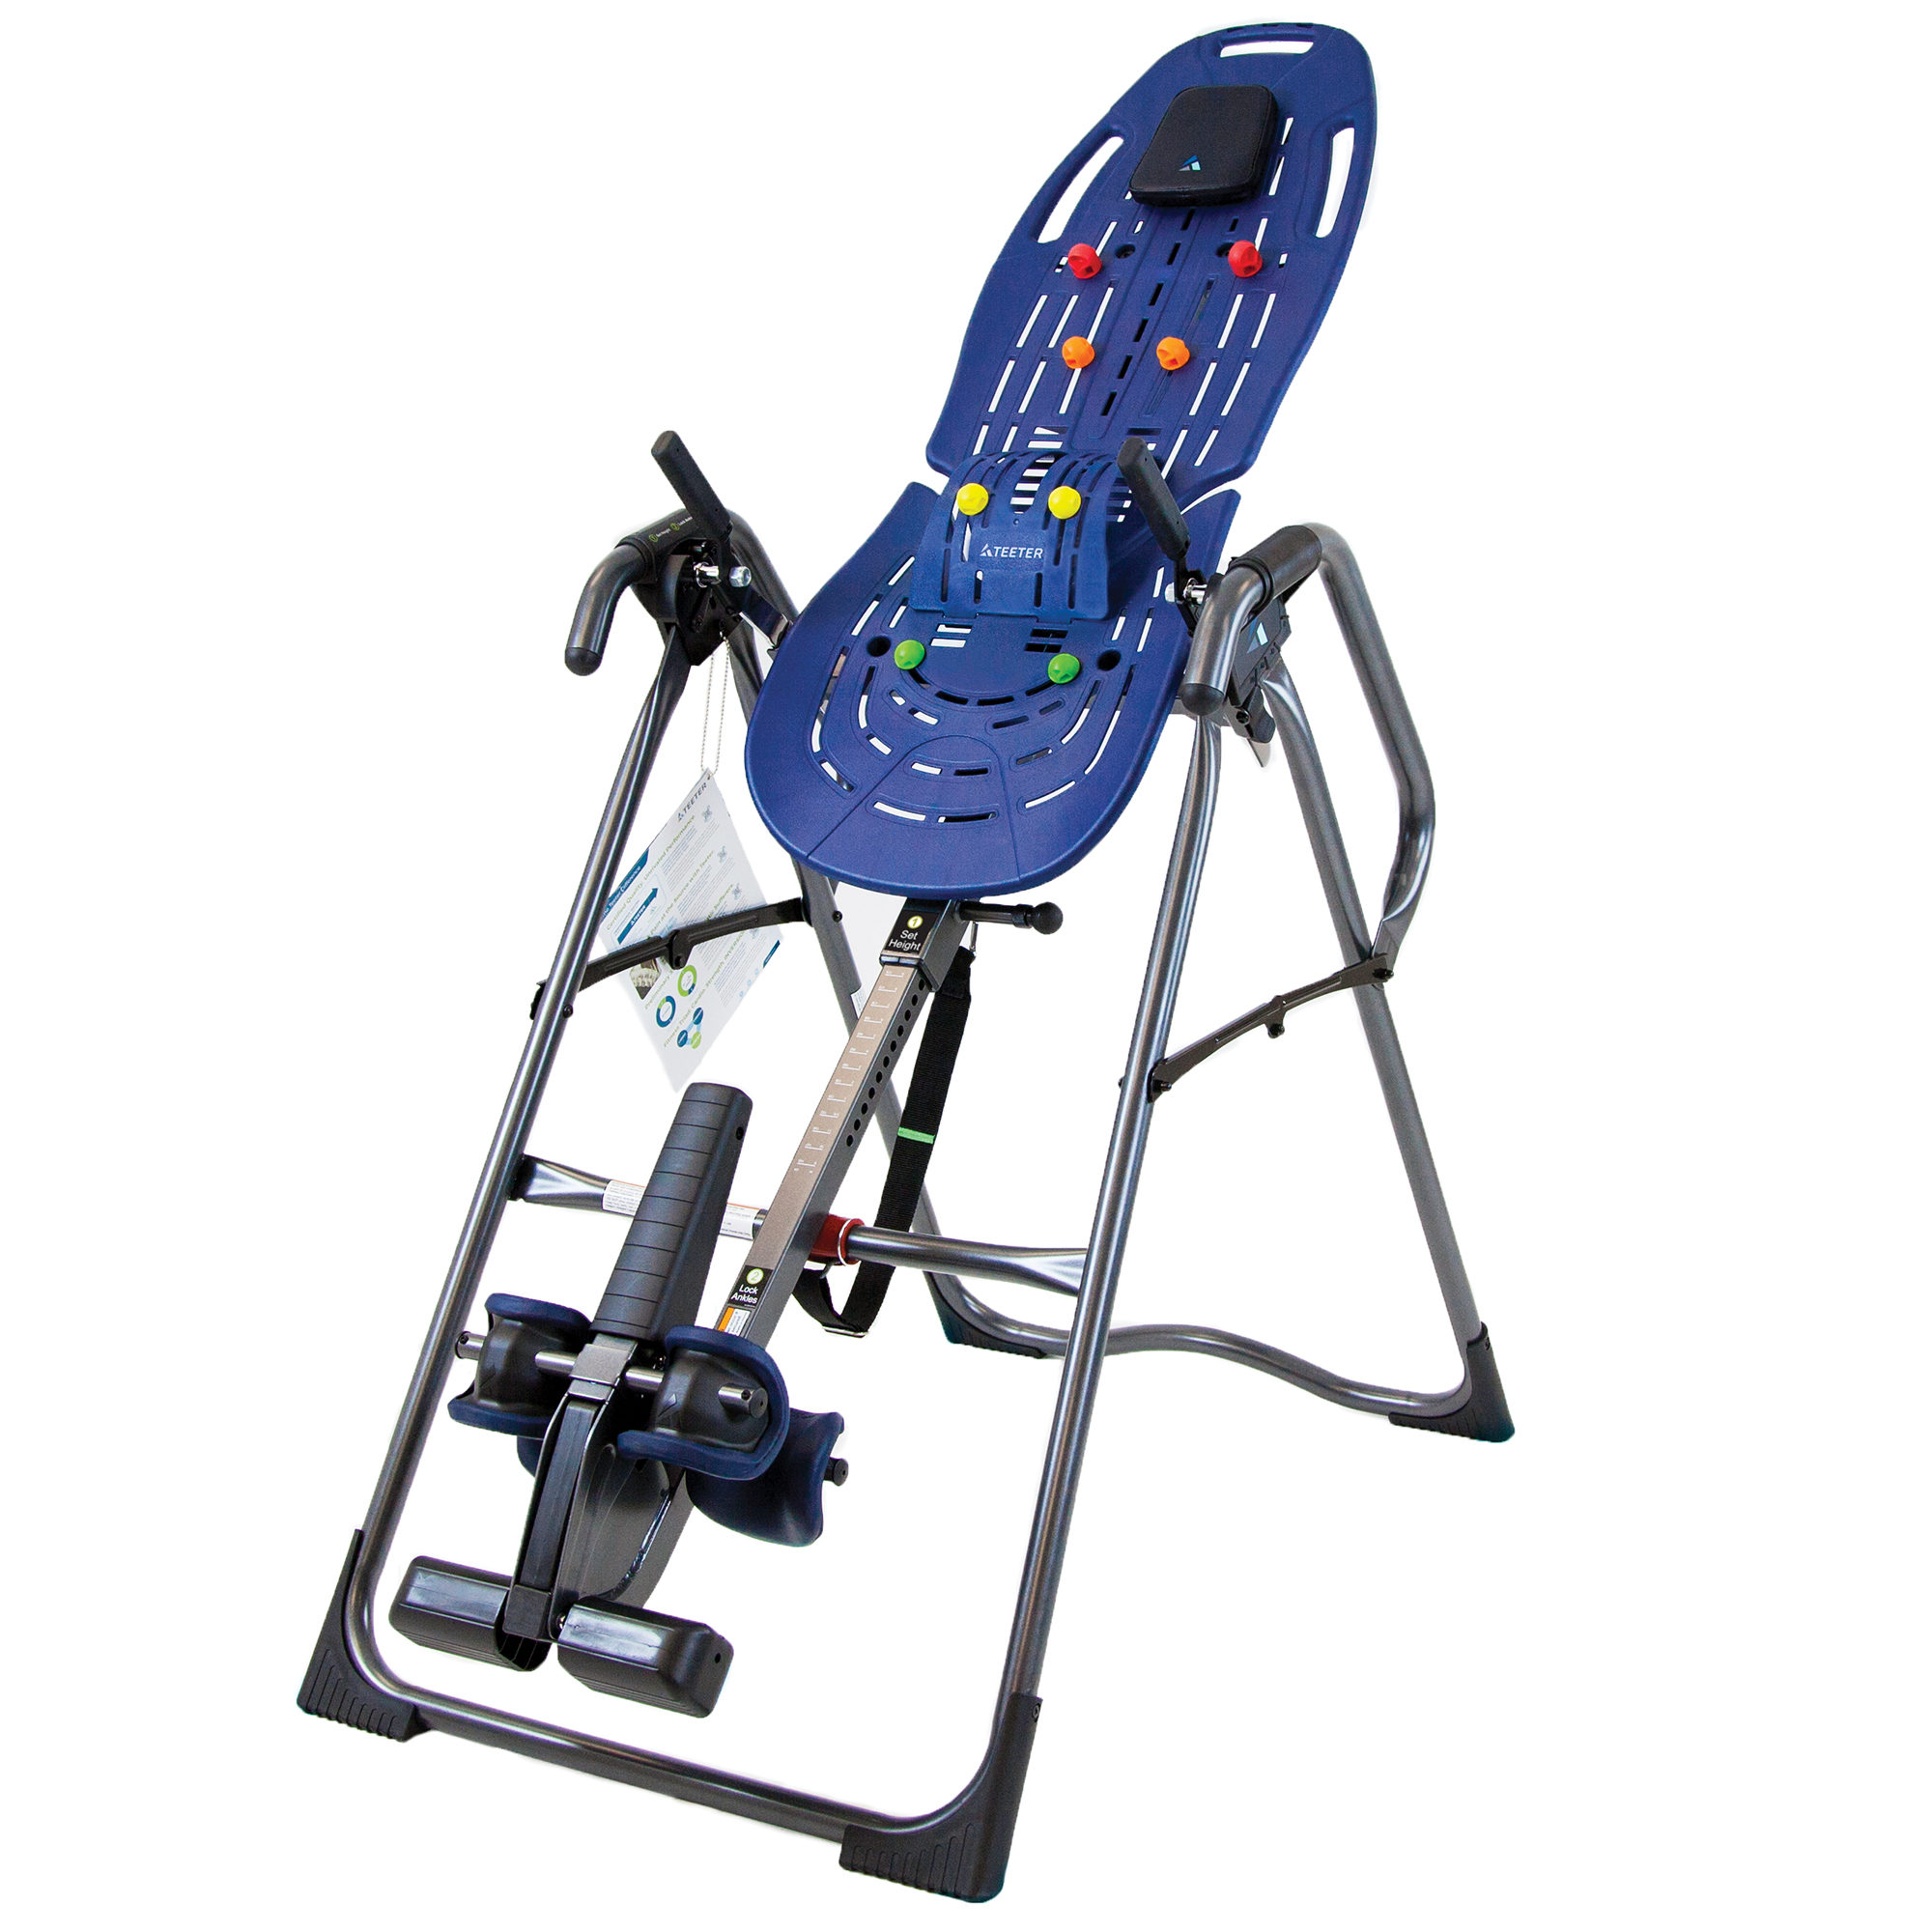 Teeter EP-960 Ltd. Inversion Table with Back Pain Relief Kit